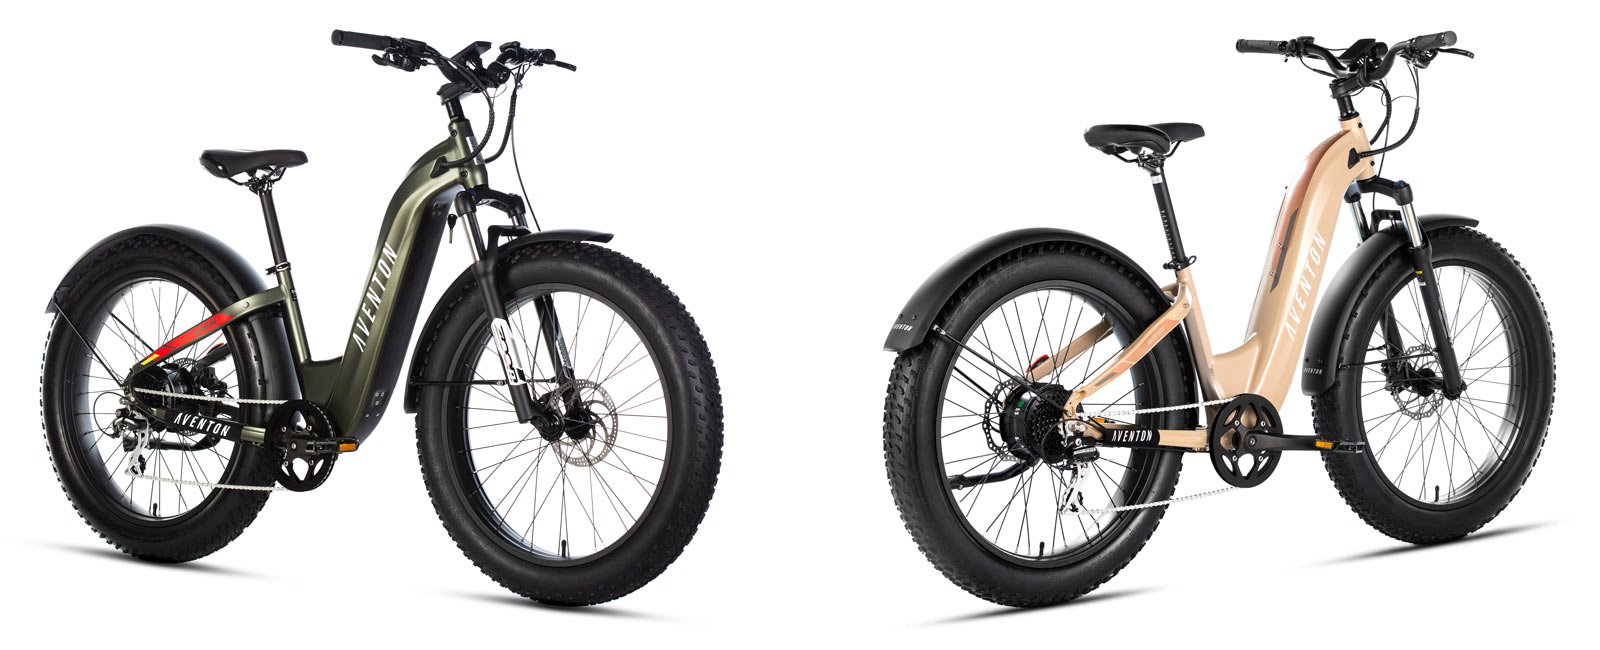 aventon aventure fat tire step thru commuter ebike shown from front and rear angles